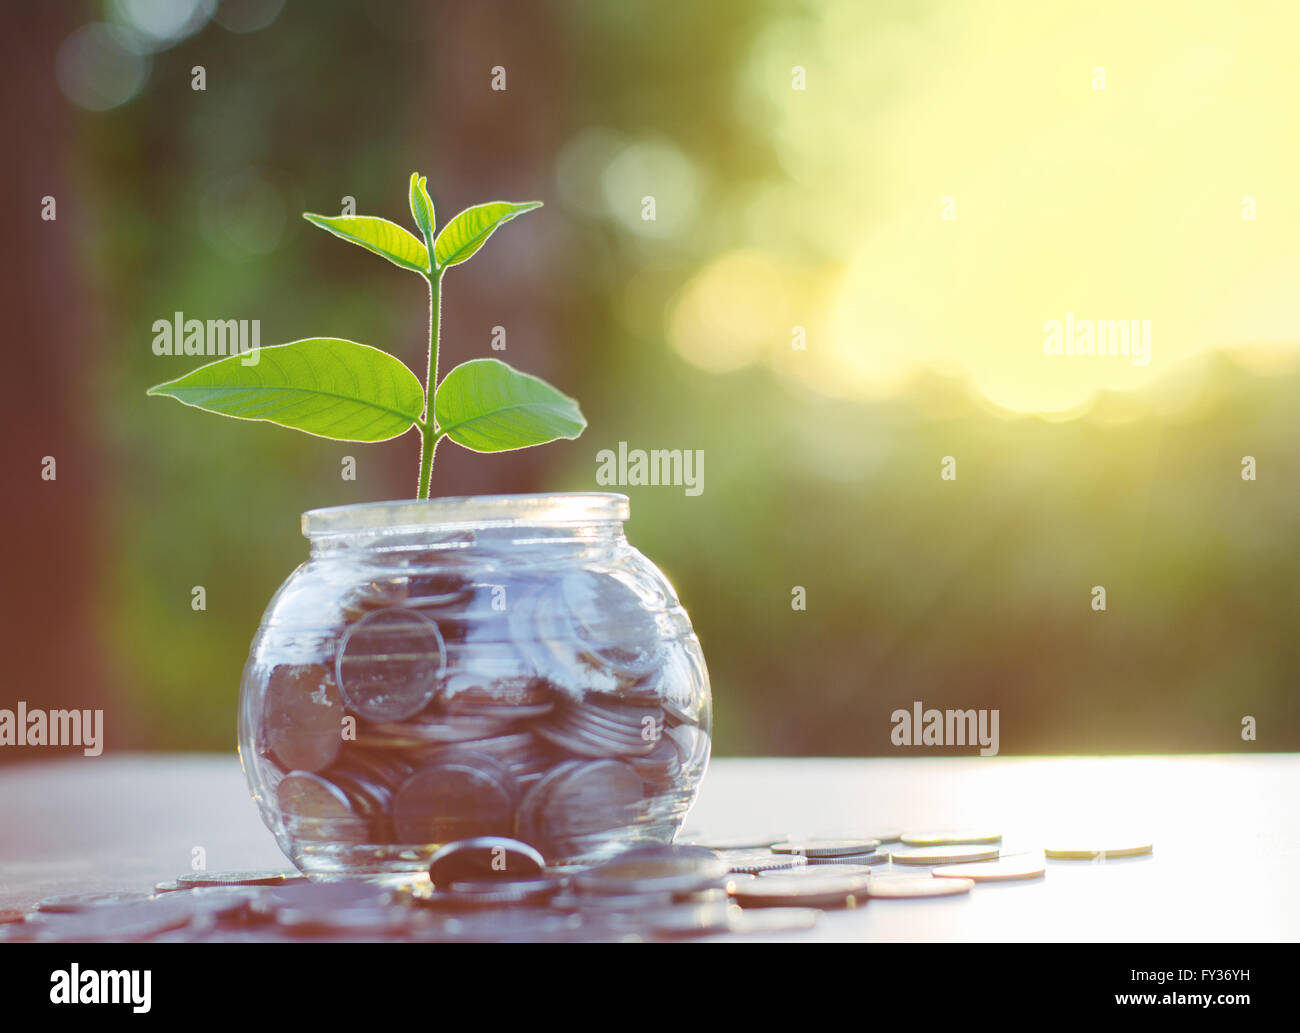 Sprout growing on glass piggy bank with sunset light in saving money concept - Stock Image